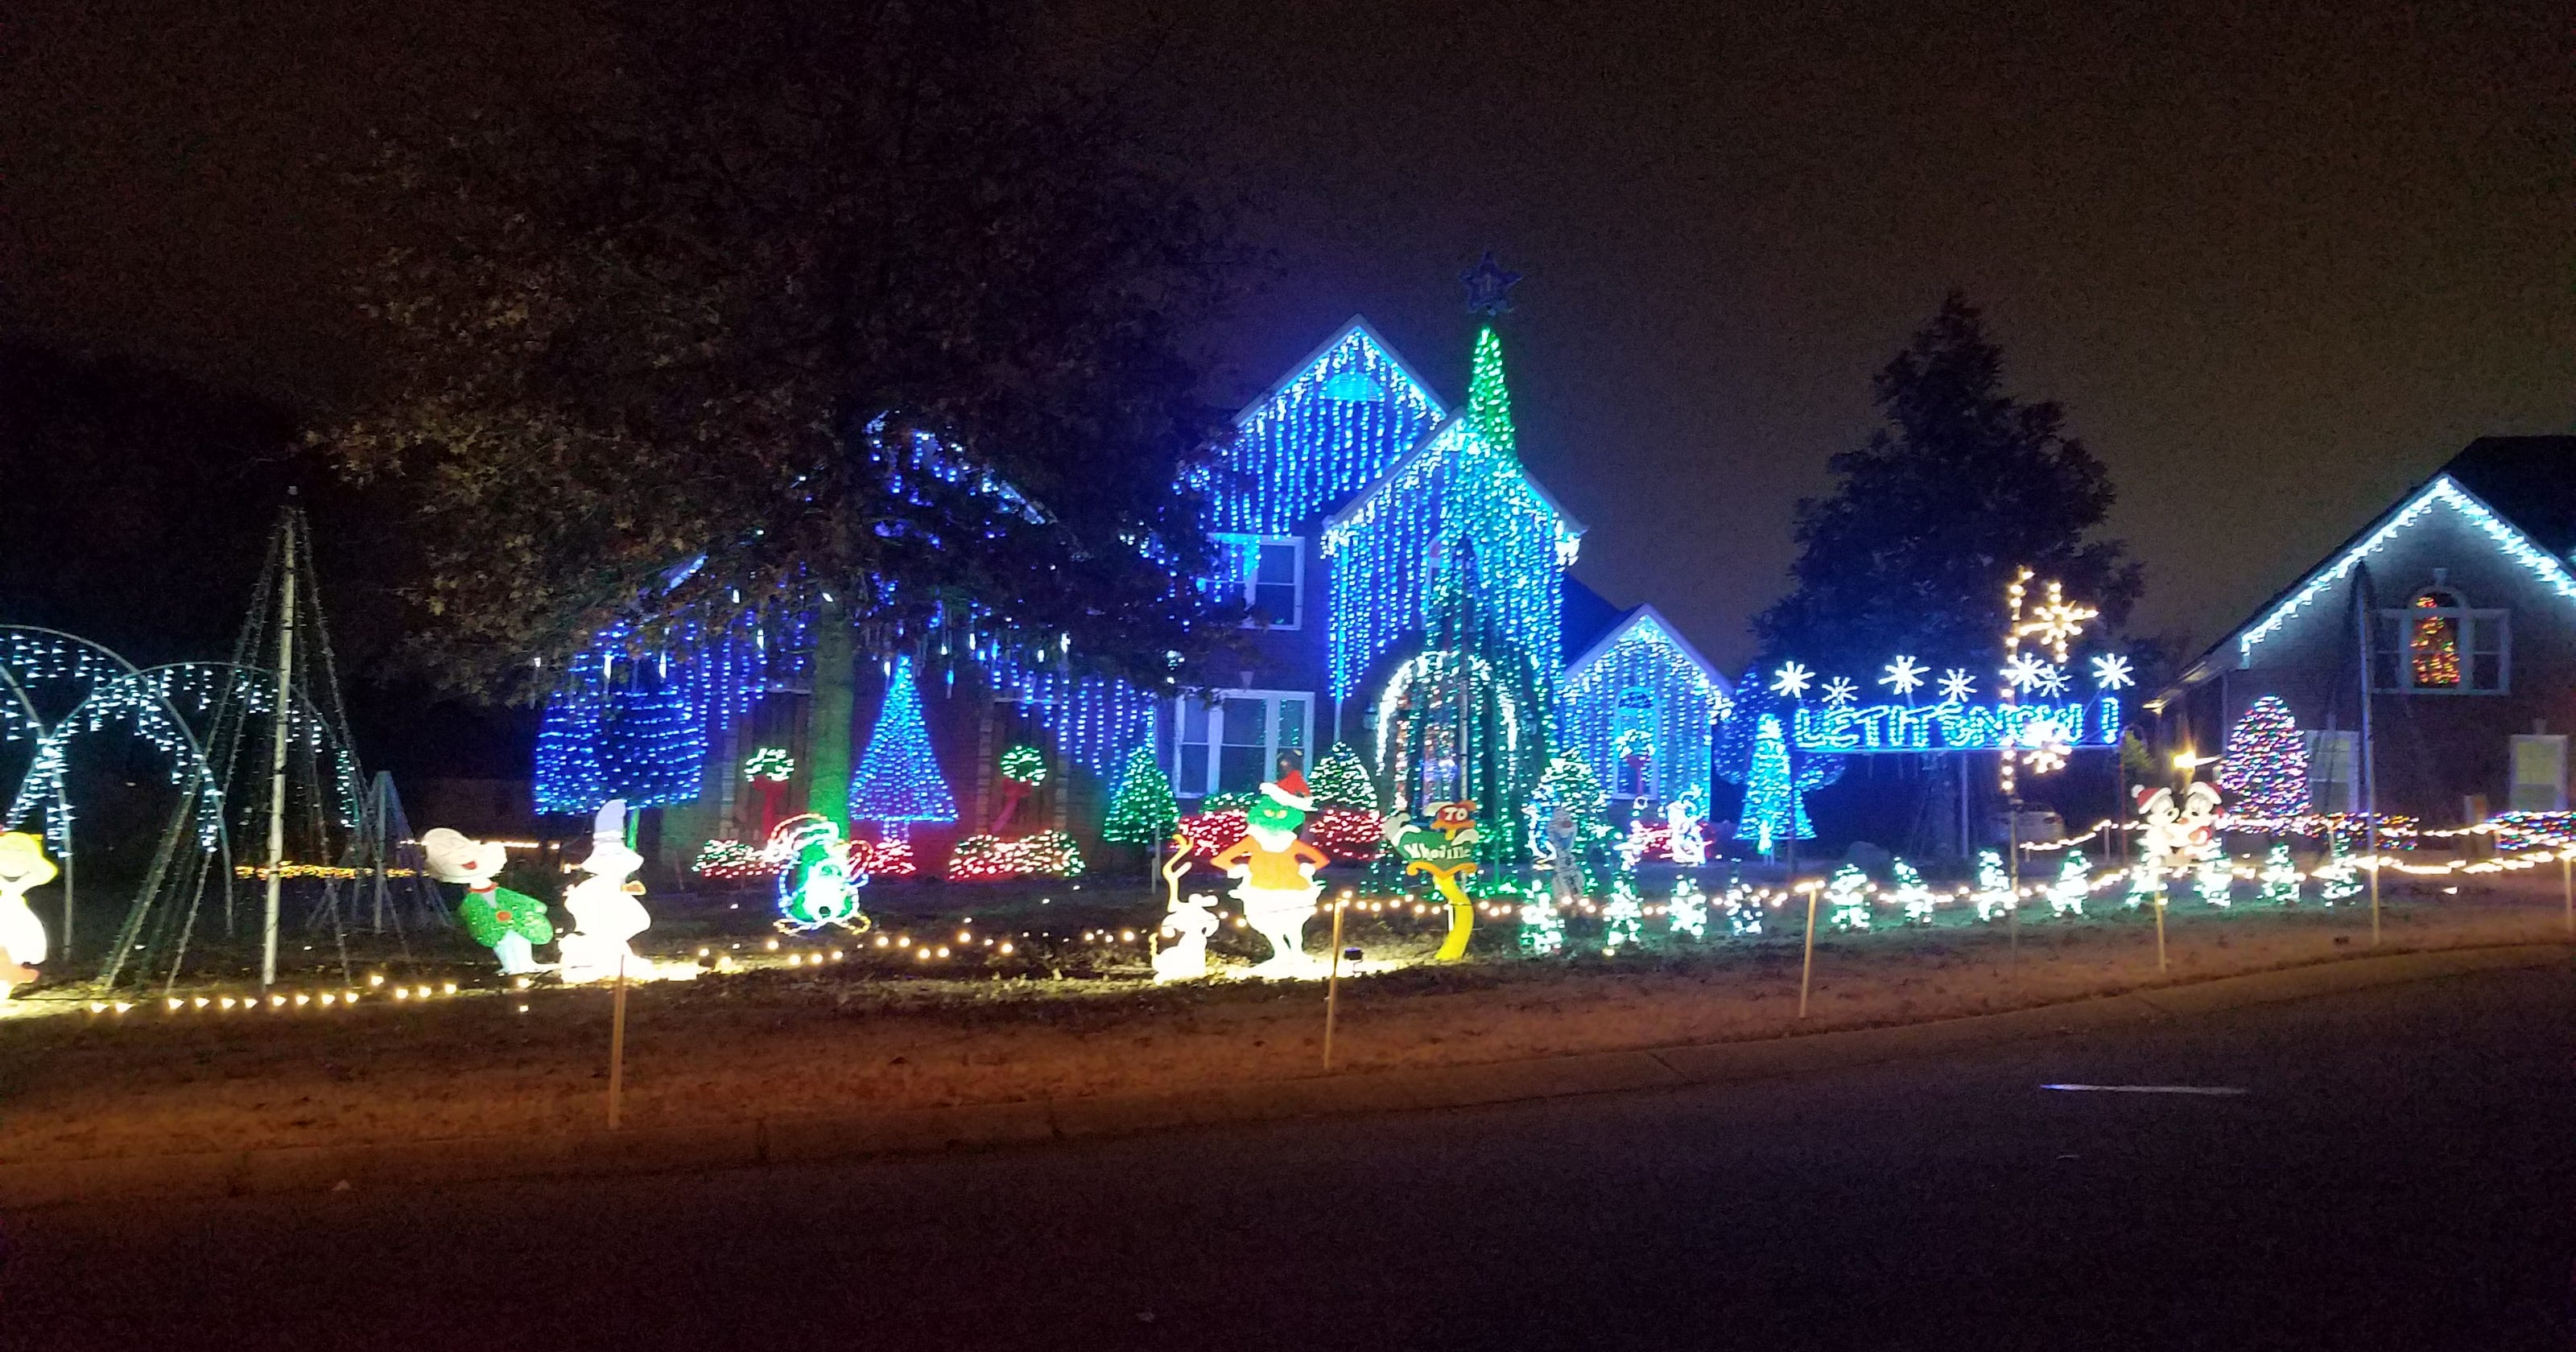 Christmas lights in Nashville: Where to go to see the lights